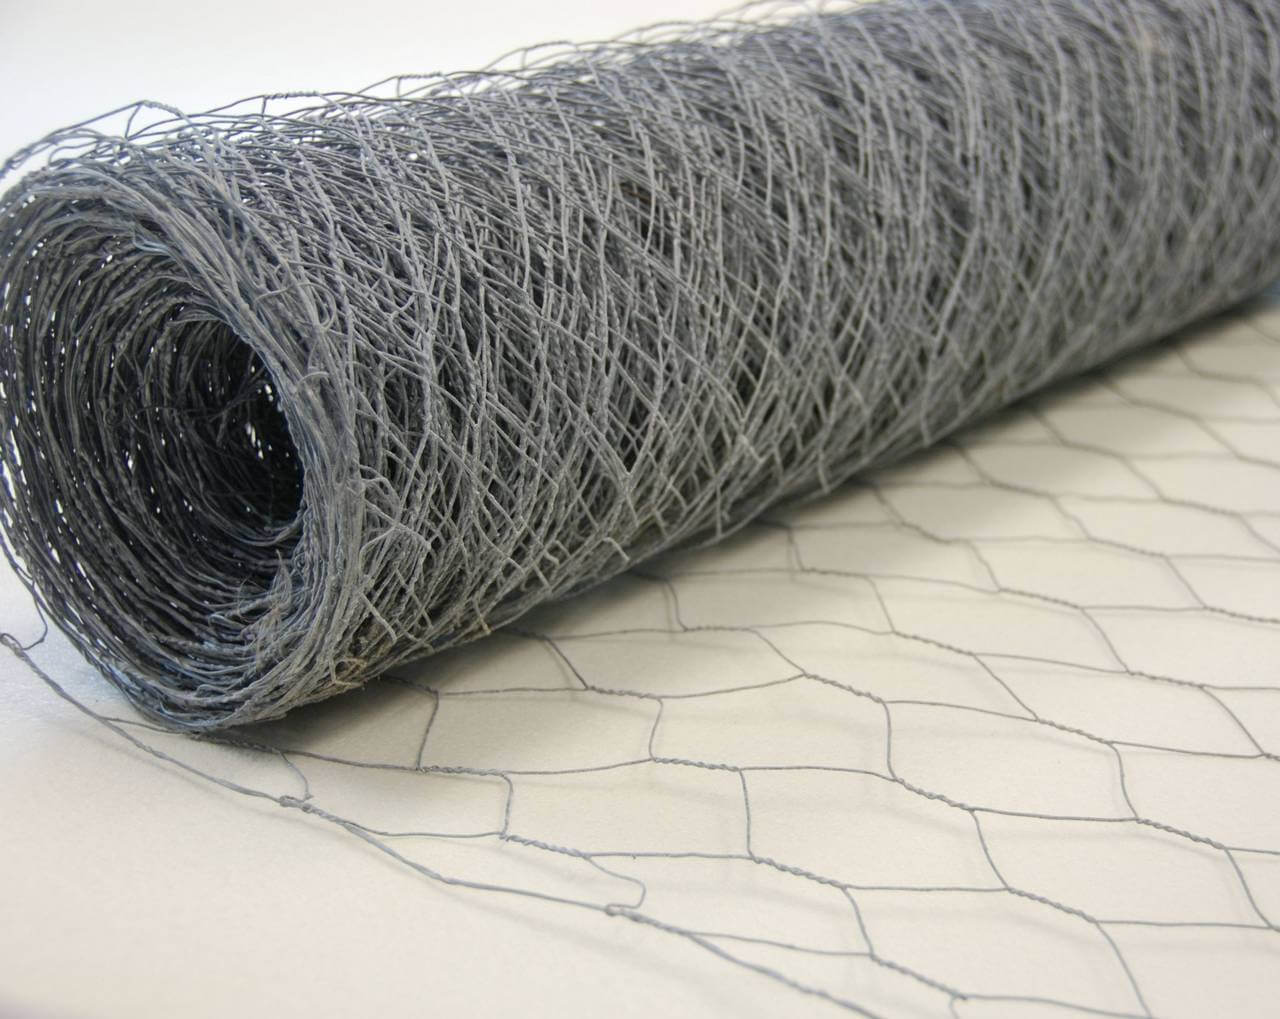 50 Metre roll of 600mm High 50mm wire netting | Jacksons Fencing